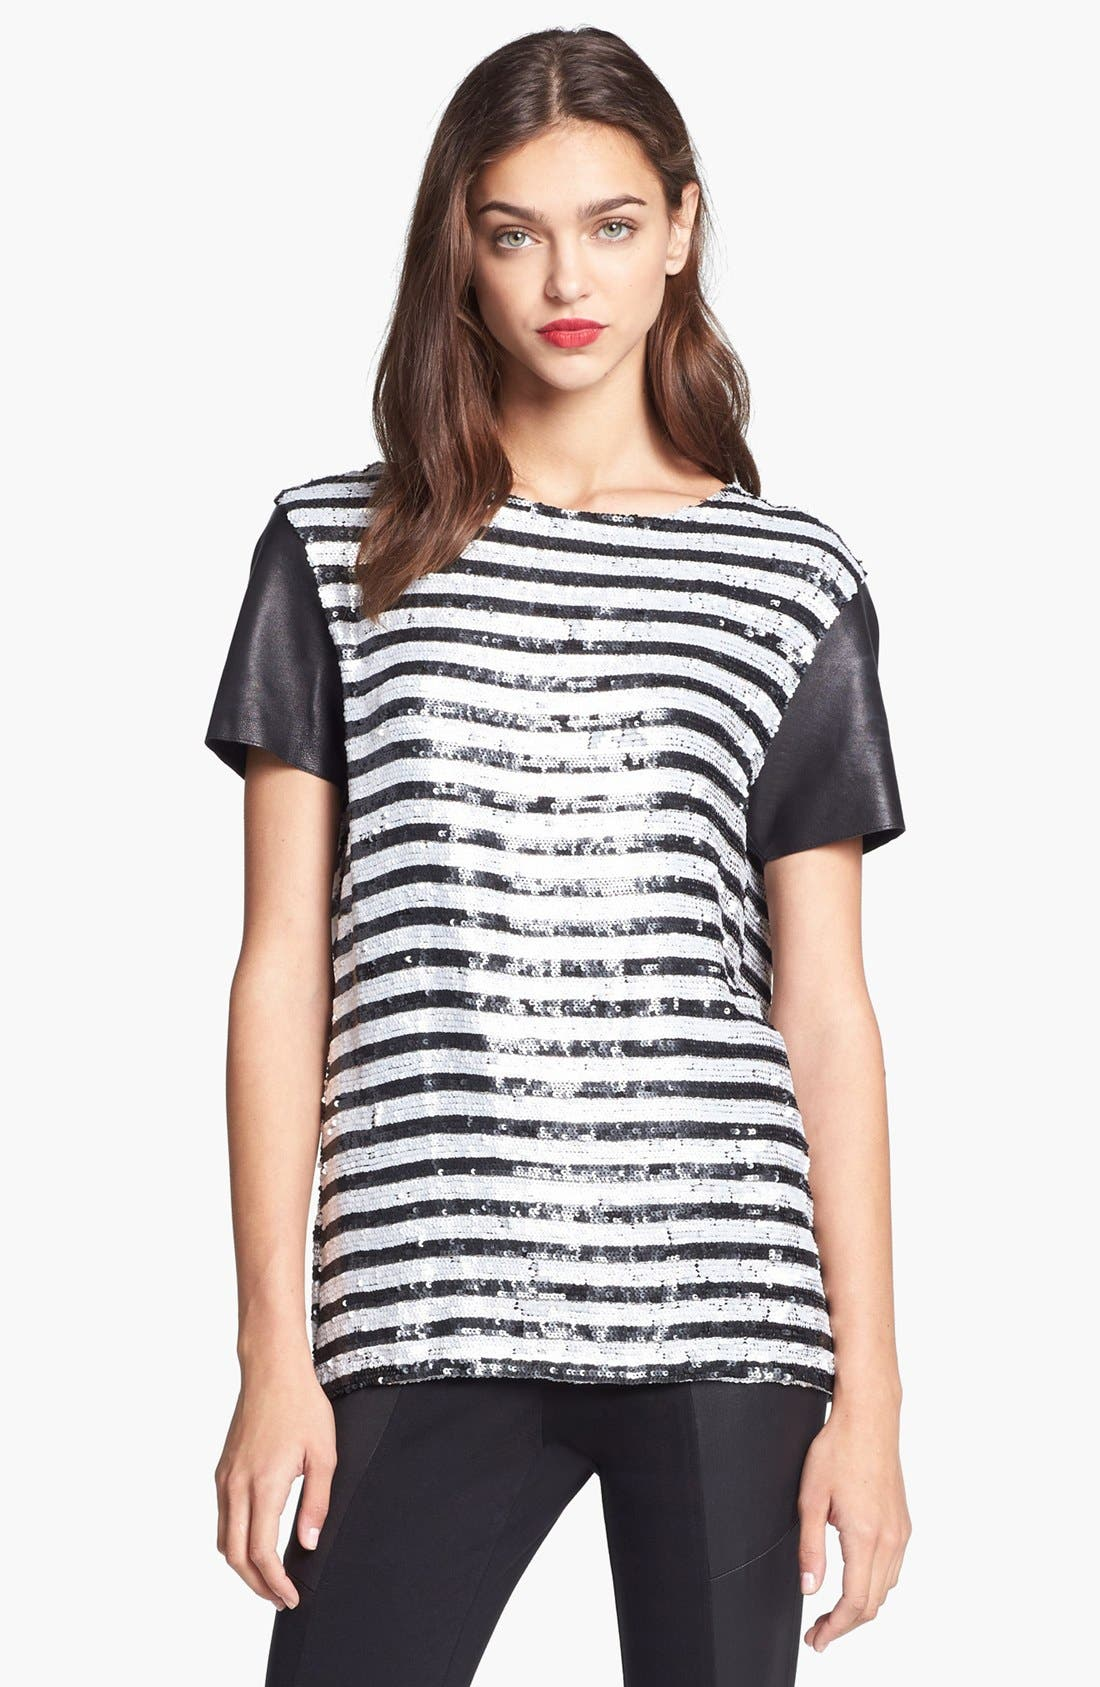 Alternate Image 1 Selected - Rachel Zoe Stripe Sequin Top